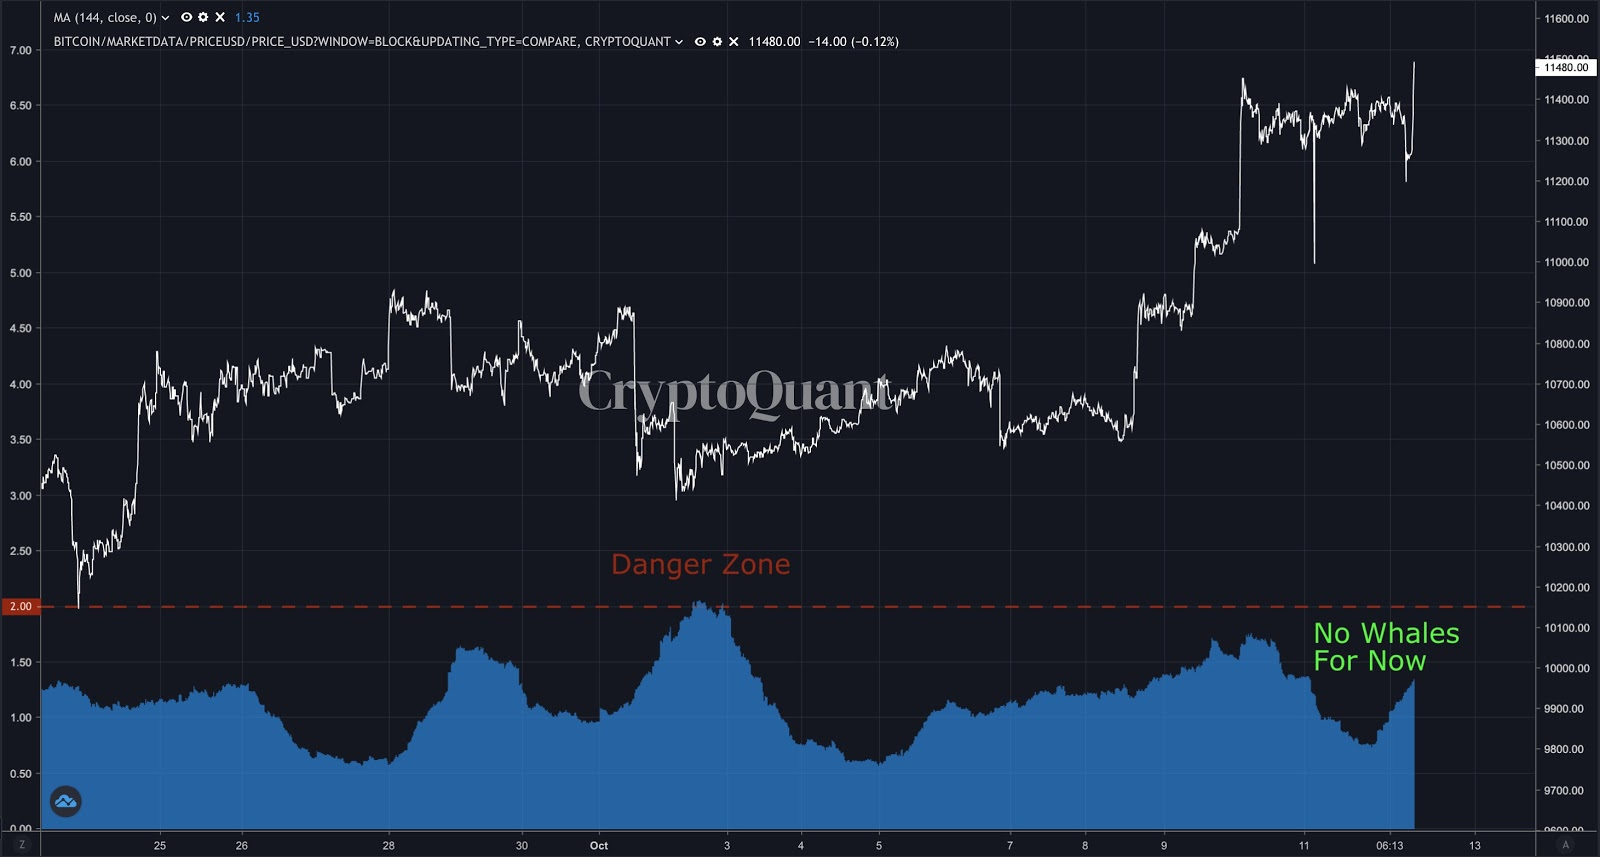 Bitcoin mean inflows vs. BTC/USD 1-month chart